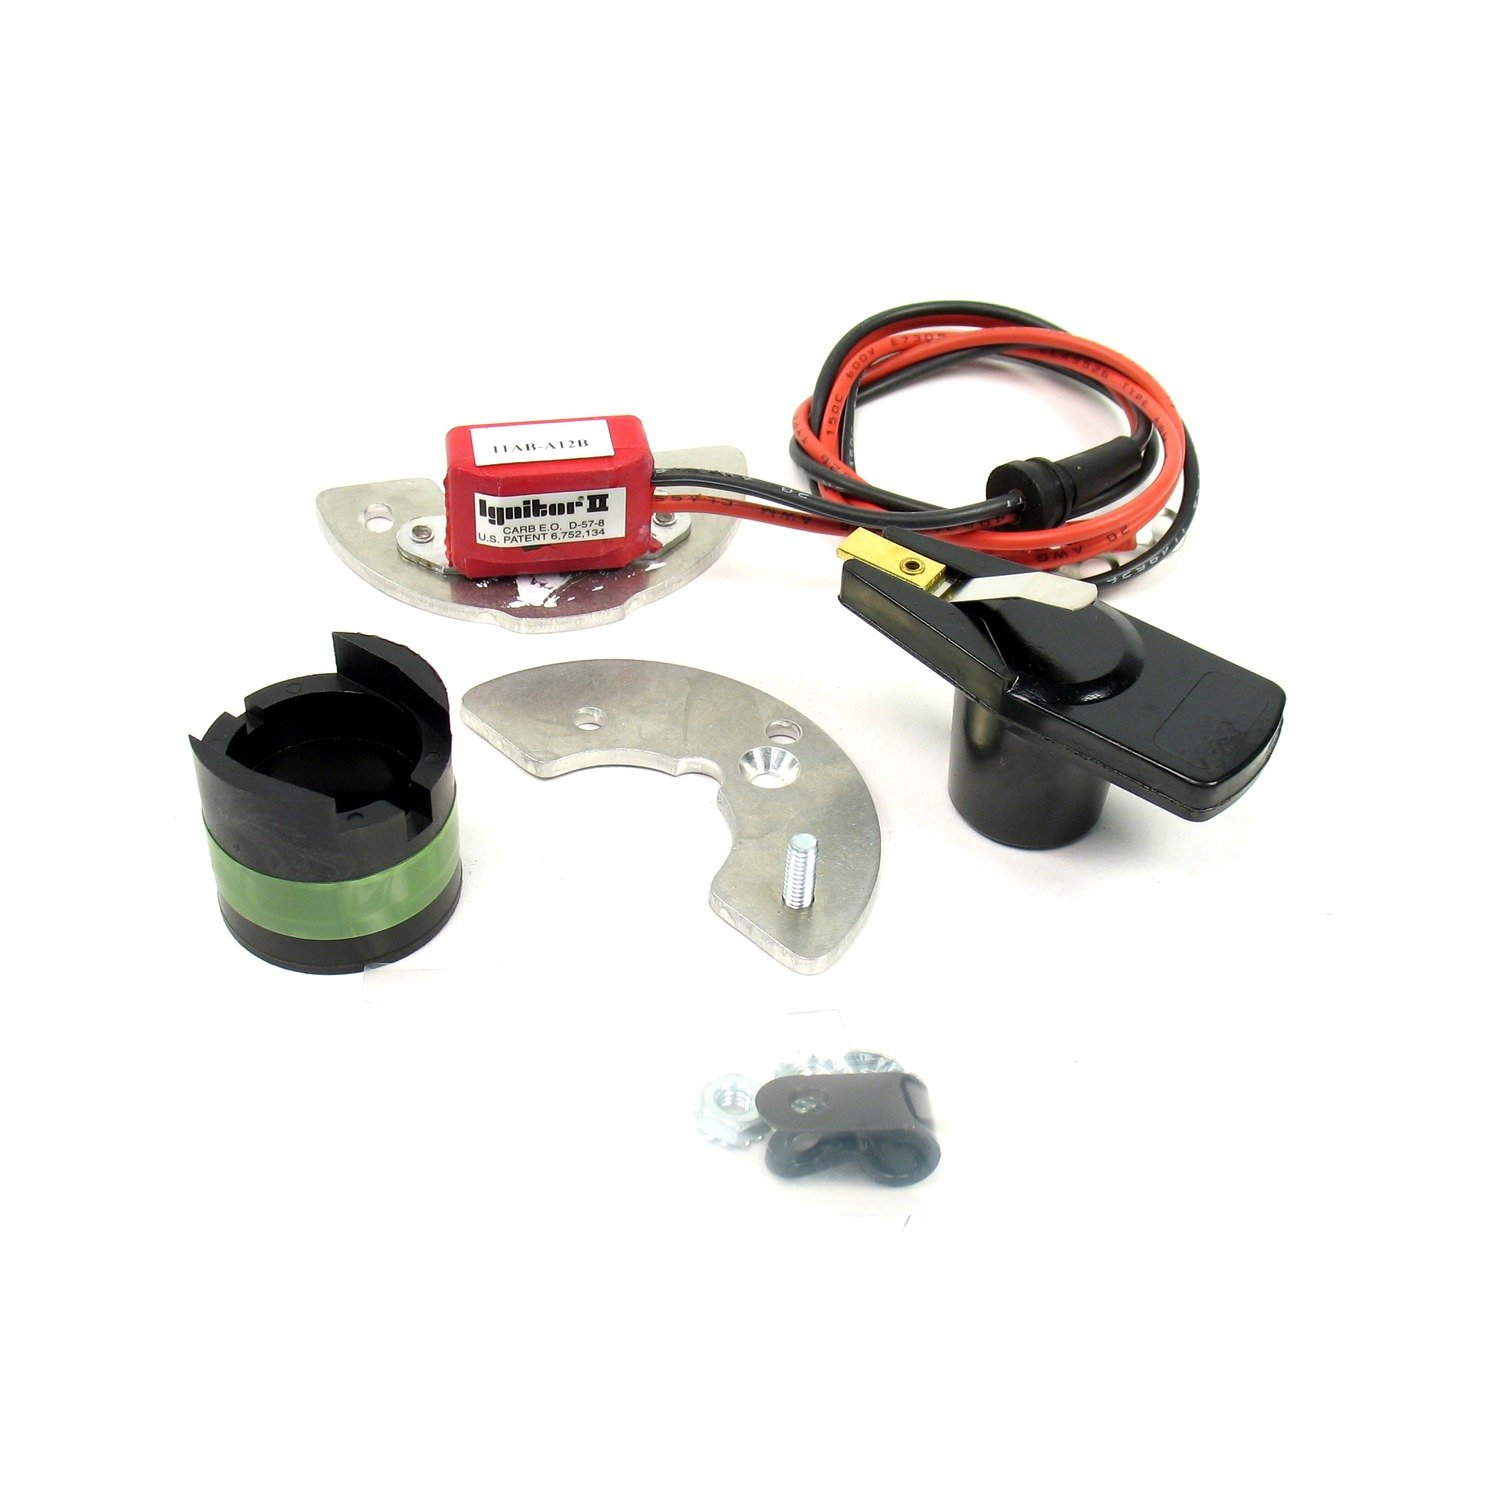 PerTronix 91381A Ignitor II Adaptive Dwell Control for Chrysler 8 Cylinder by Pertronix